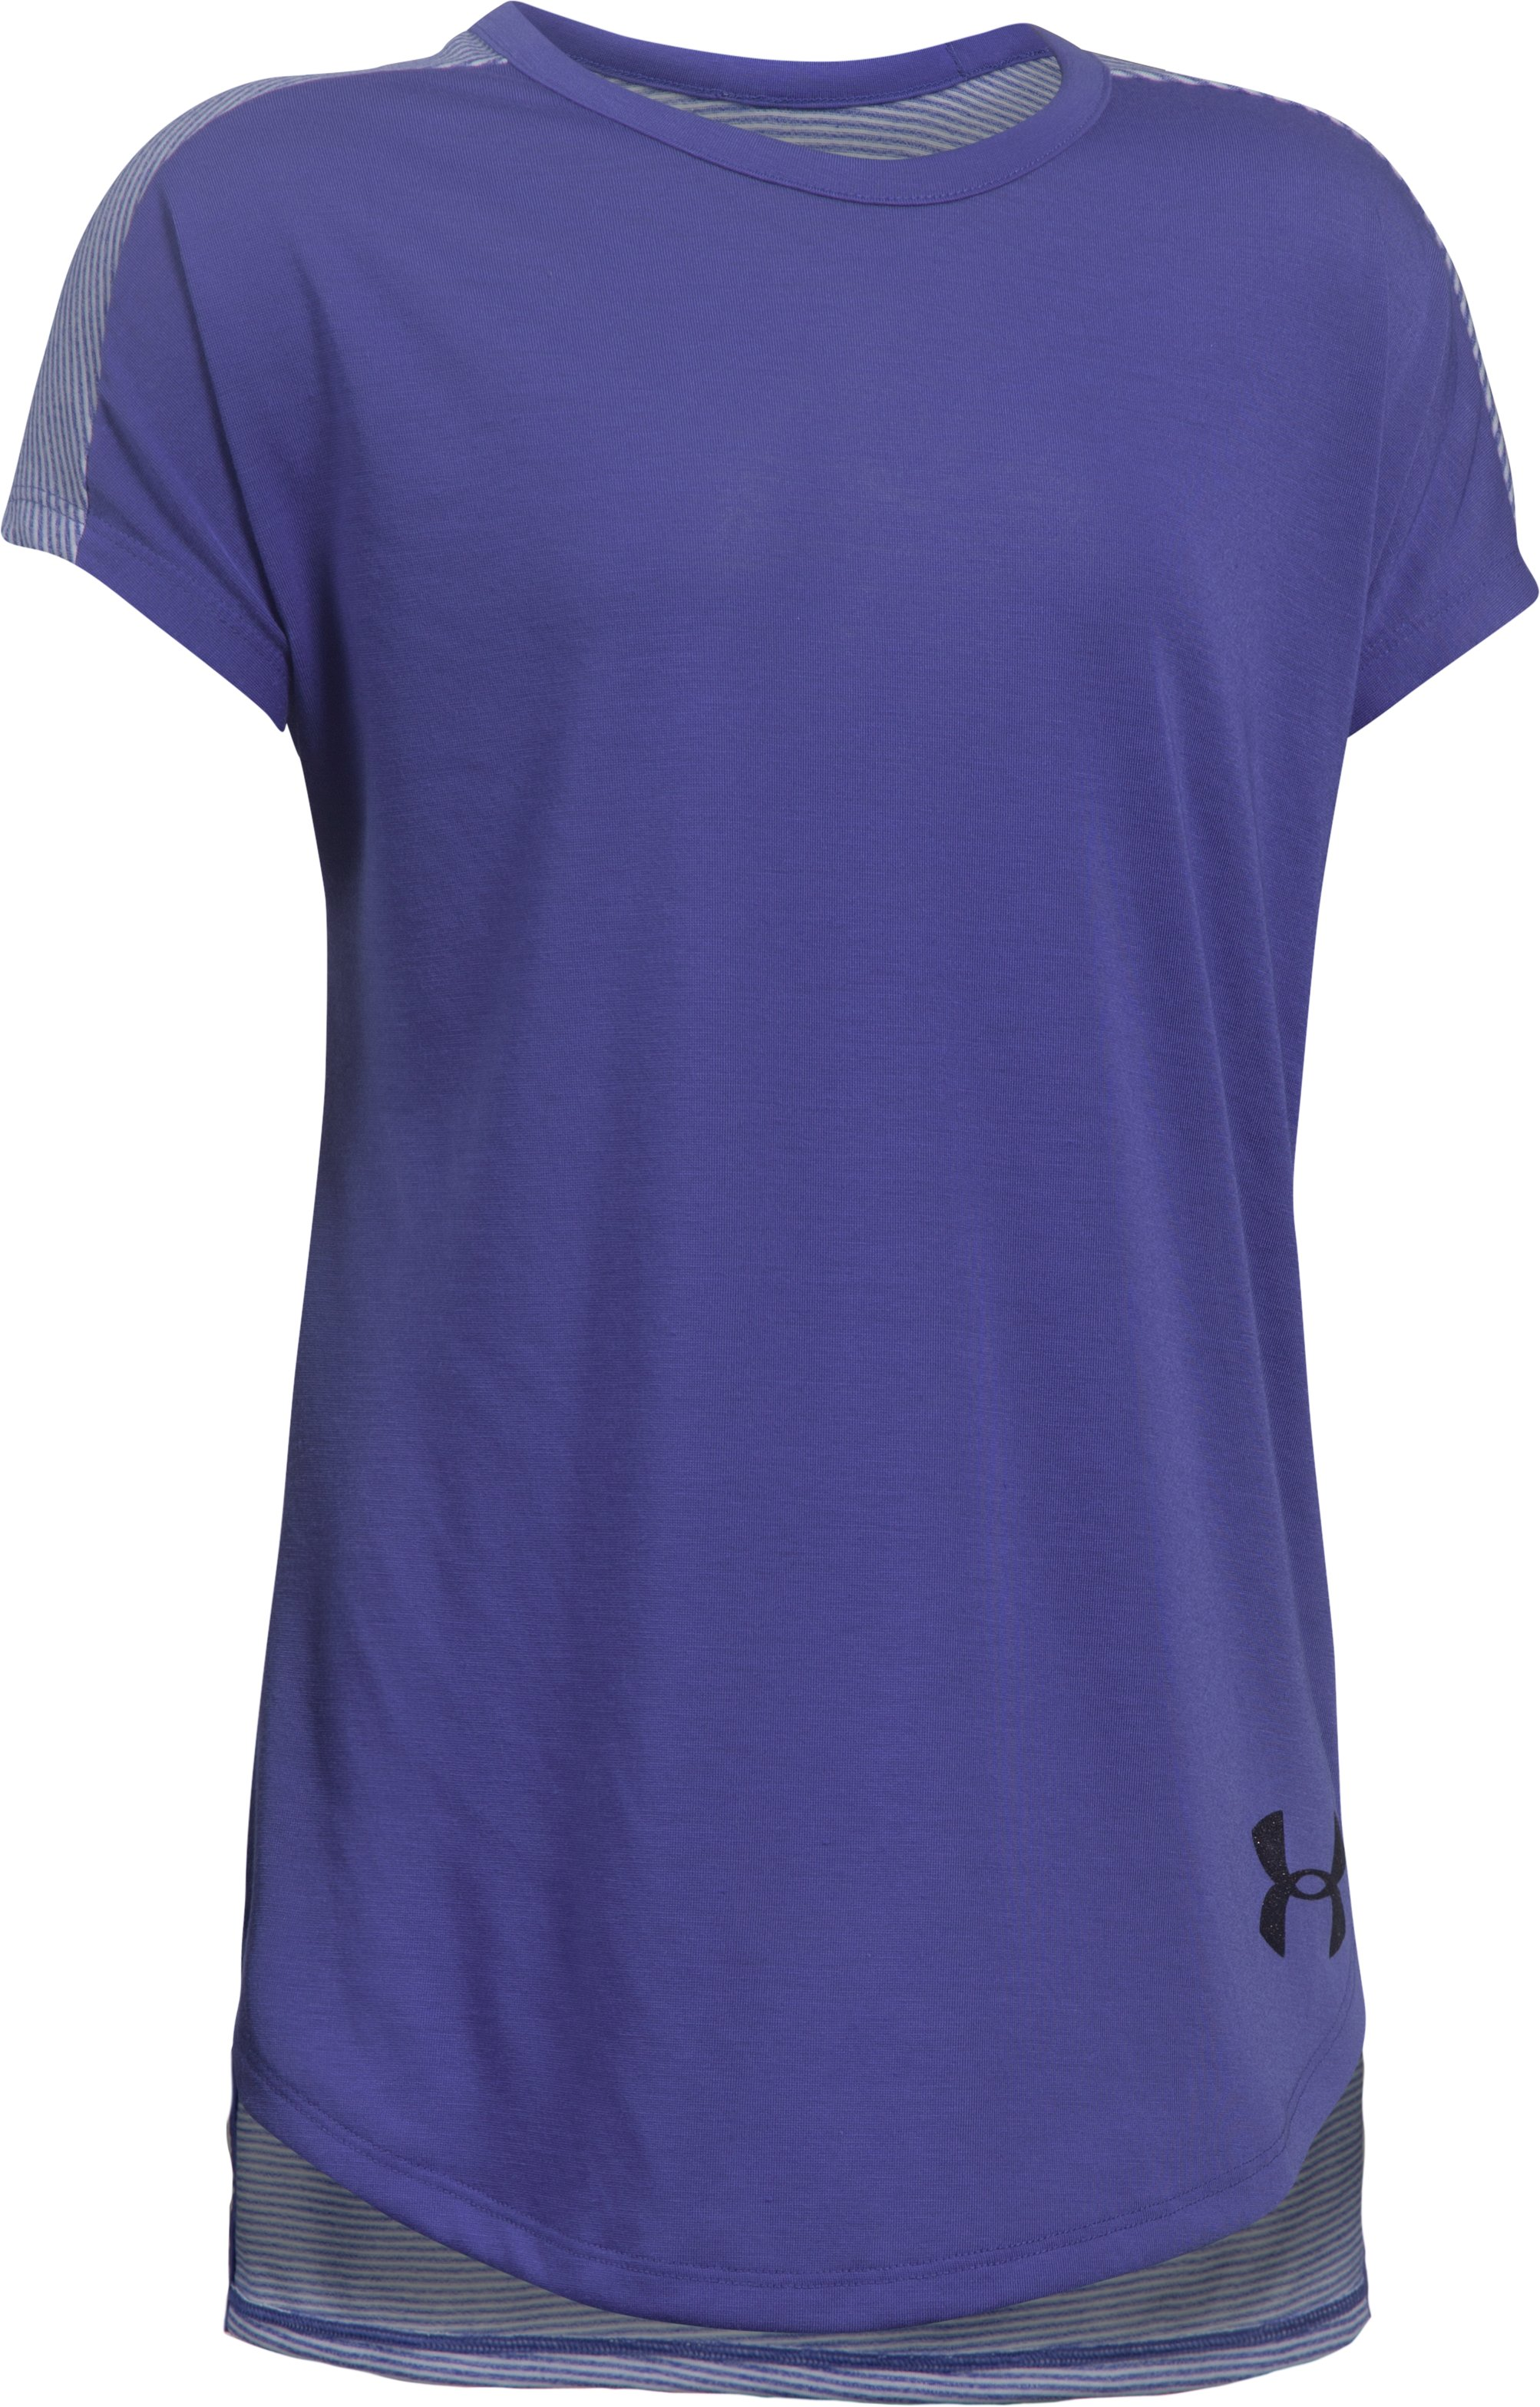 Girls' UA Threadborne Play Up T-Shirt, CONSTELLATION PURPLE, undefined